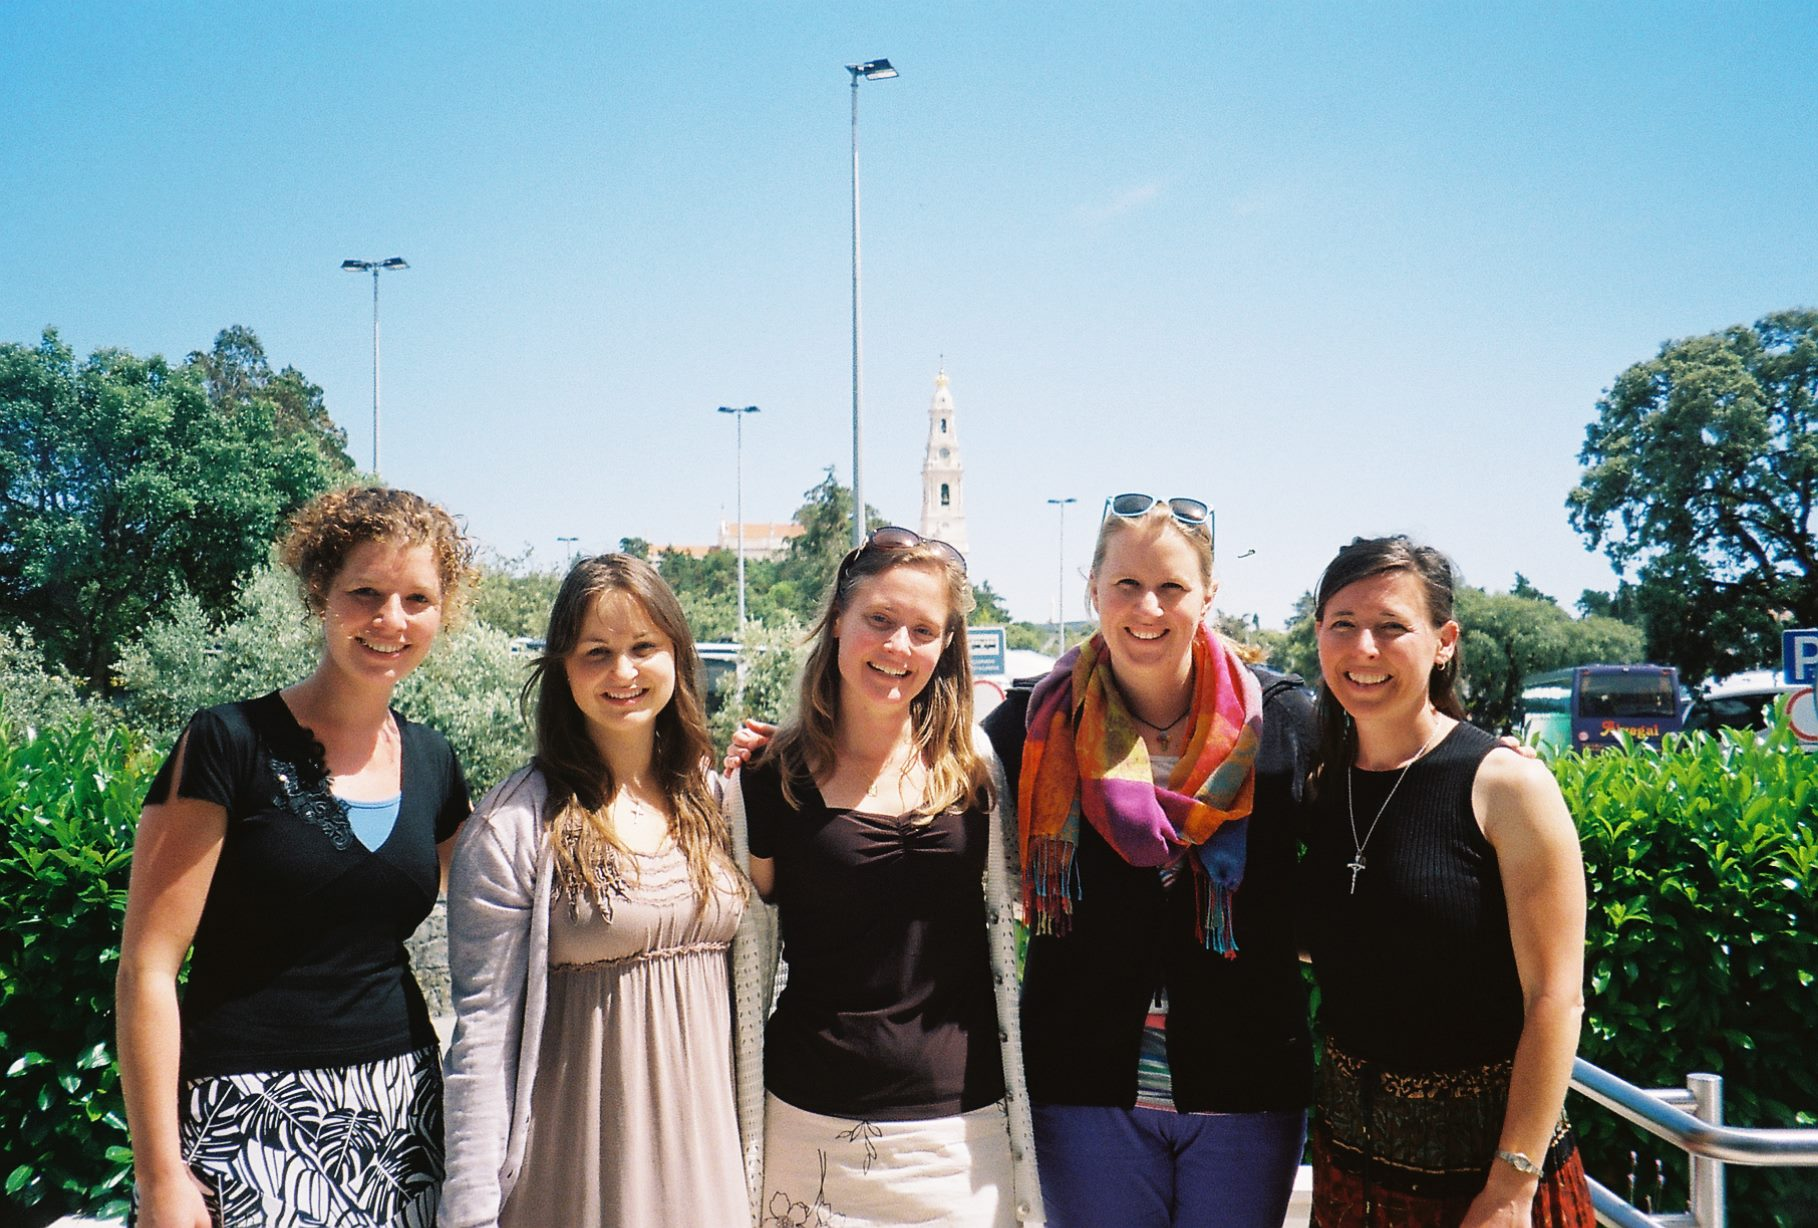 ITI students with a couple of new friends at the Theology of the Body International Symposium in Fatima, Portugal (June 13-16, 2013).